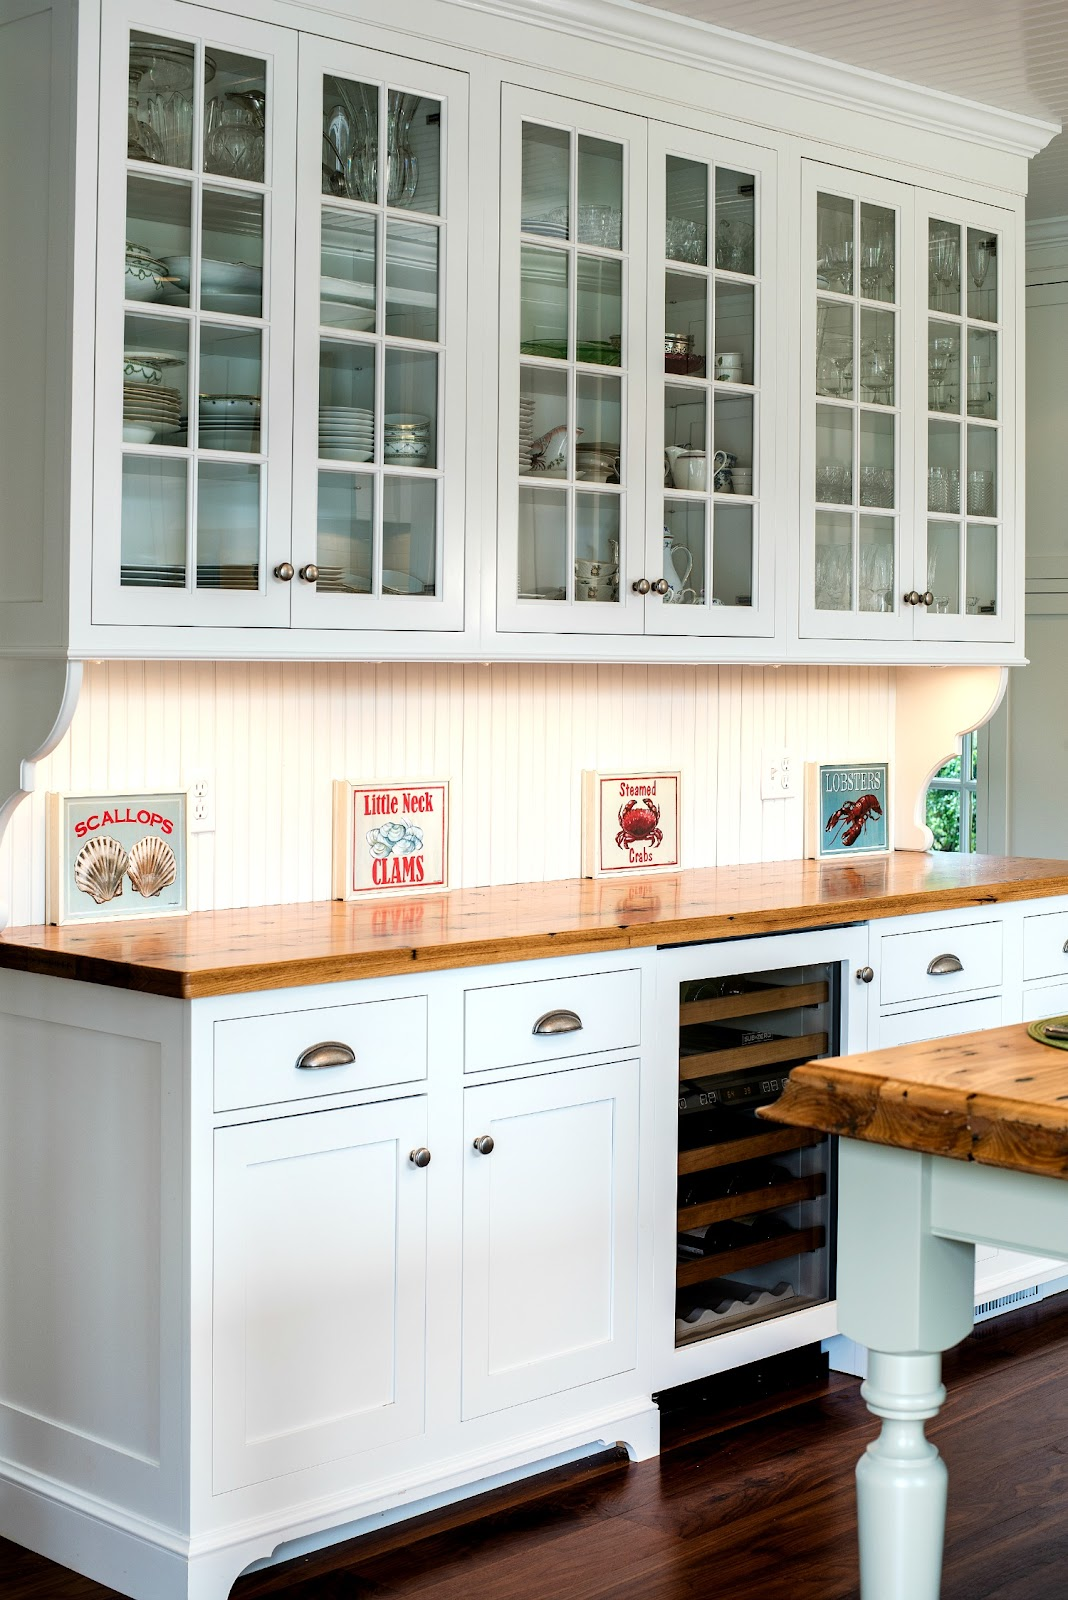 The Top Kitchen Design Trends for 2018 | New Kitchen Trends 2018